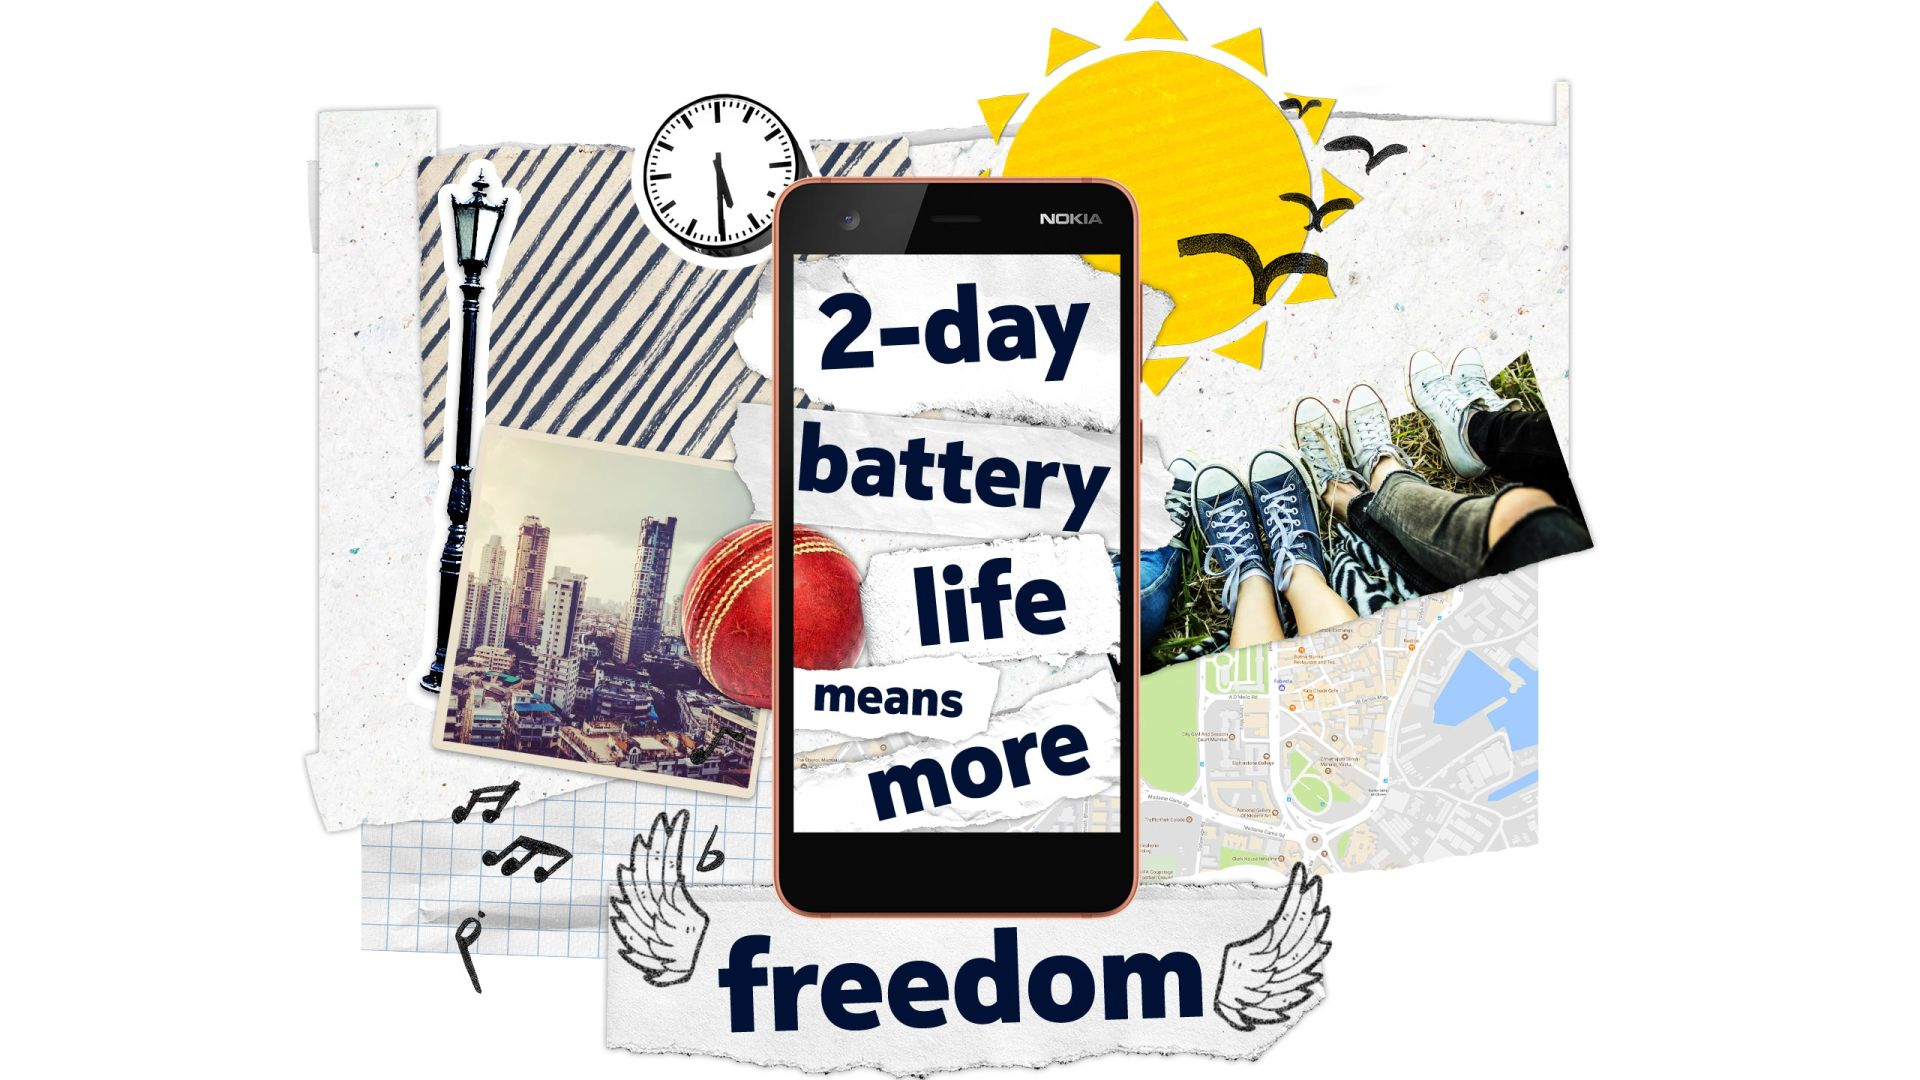 nokia_2-campaign-the_battery2.jpg